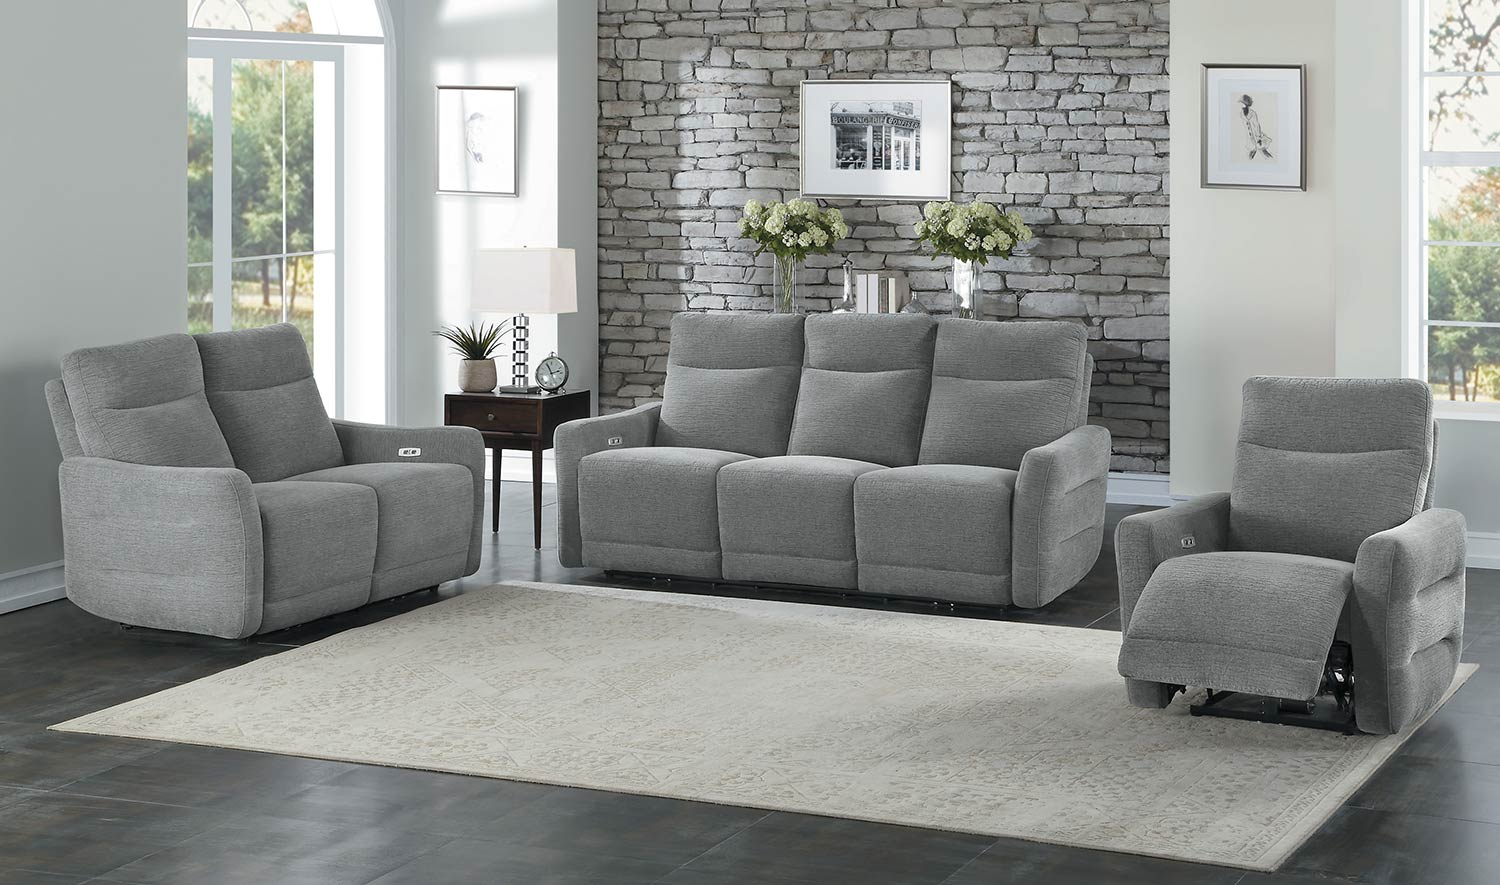 Homelegance Edition Power Reclining Sofa Set - Dove